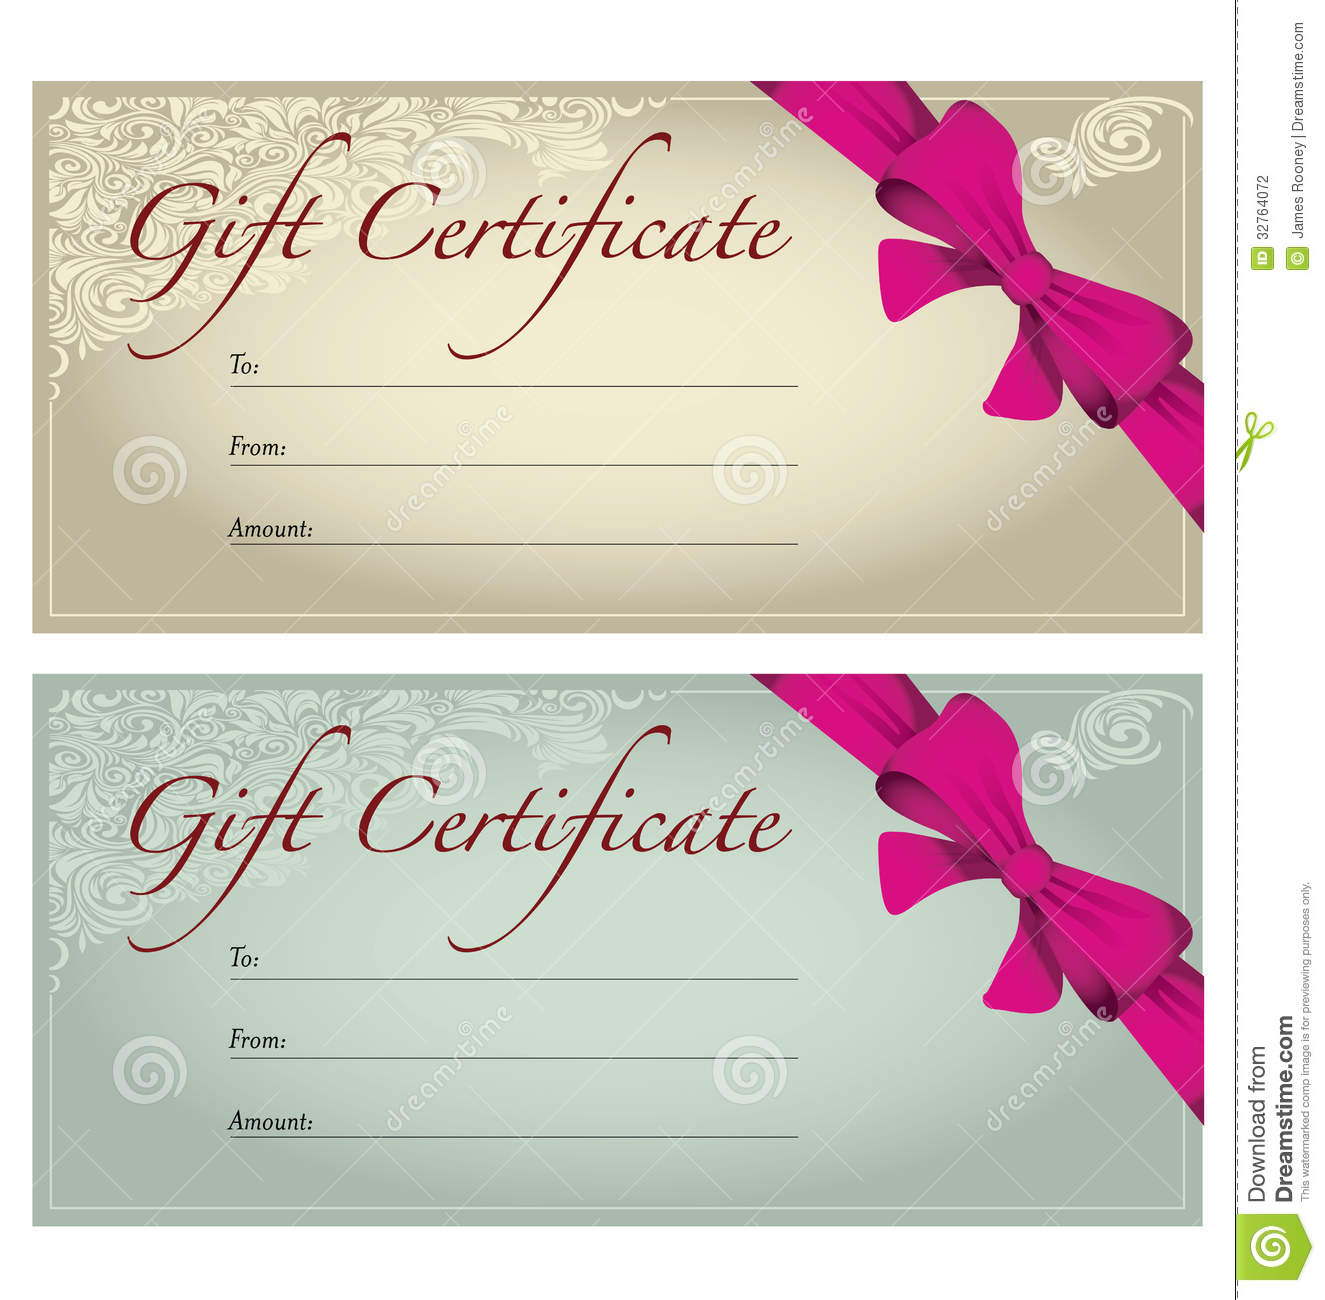 Fill In Gift Certificate Template Professional Christmas Free - Free Printable Photography Gift Certificate Template